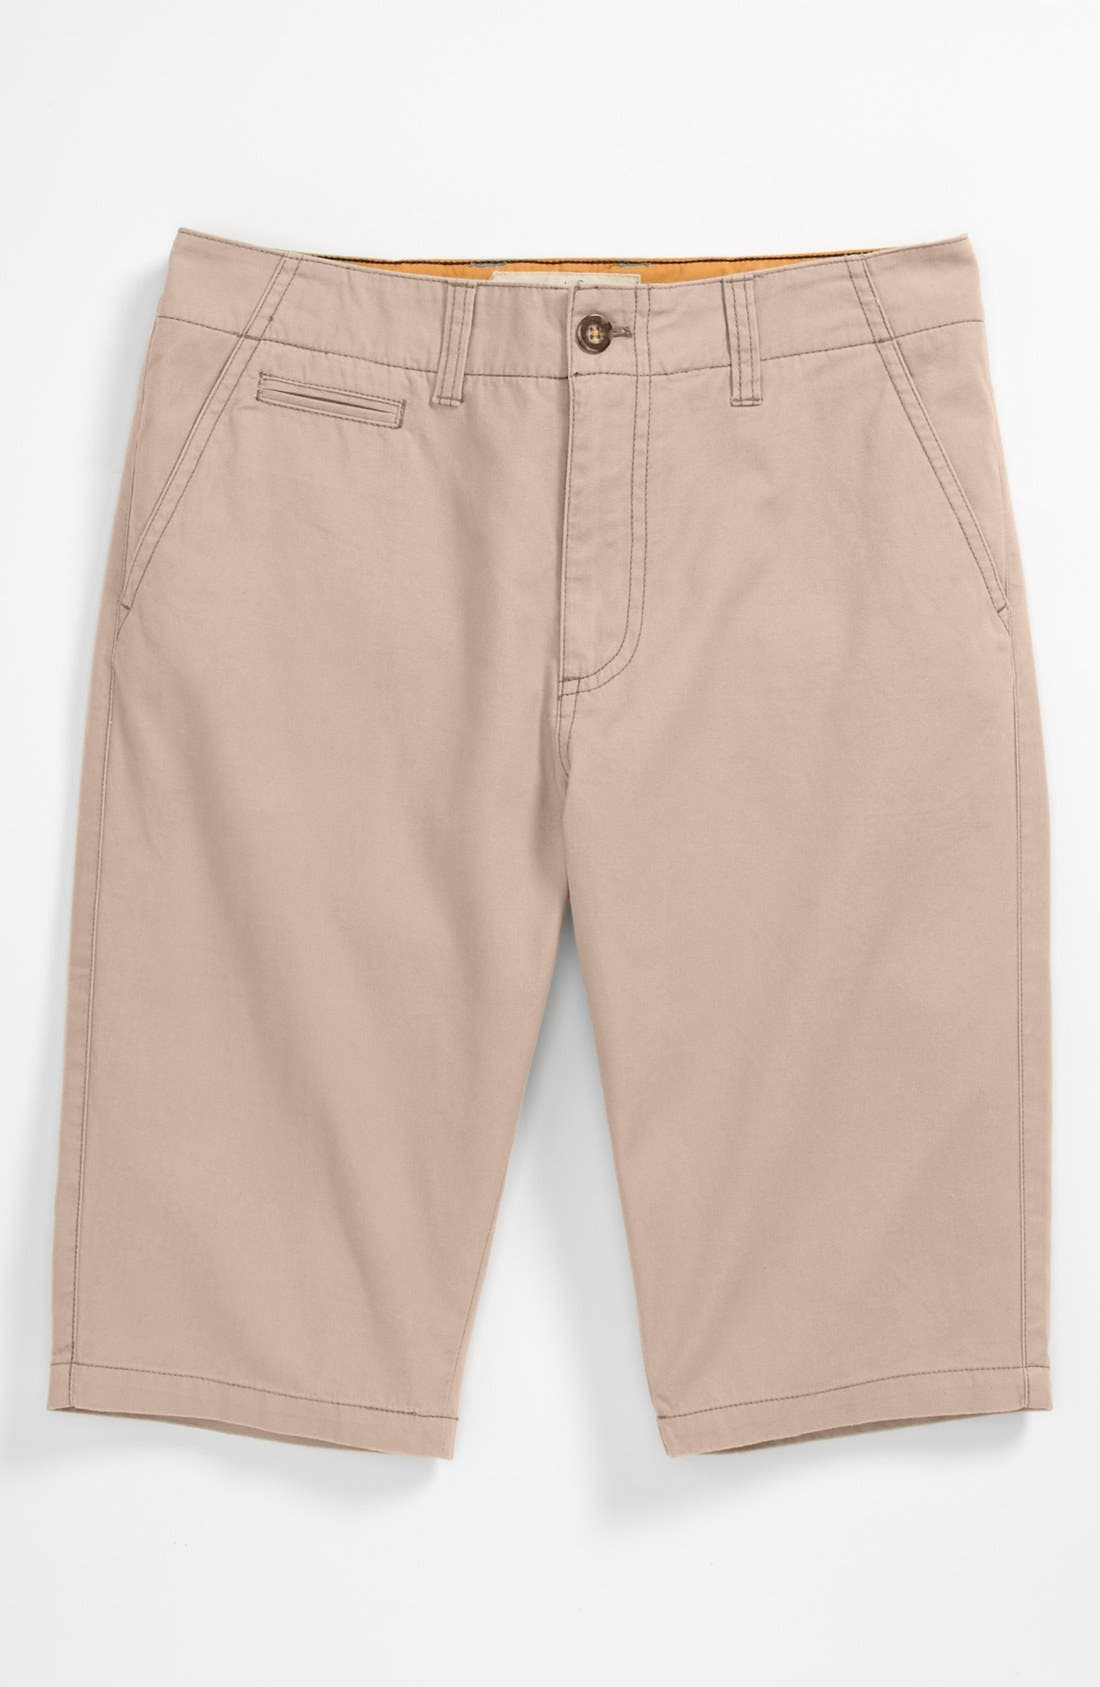 Alternate Image 1 Selected - Johnnie b Chino Shorts (Big Boys)